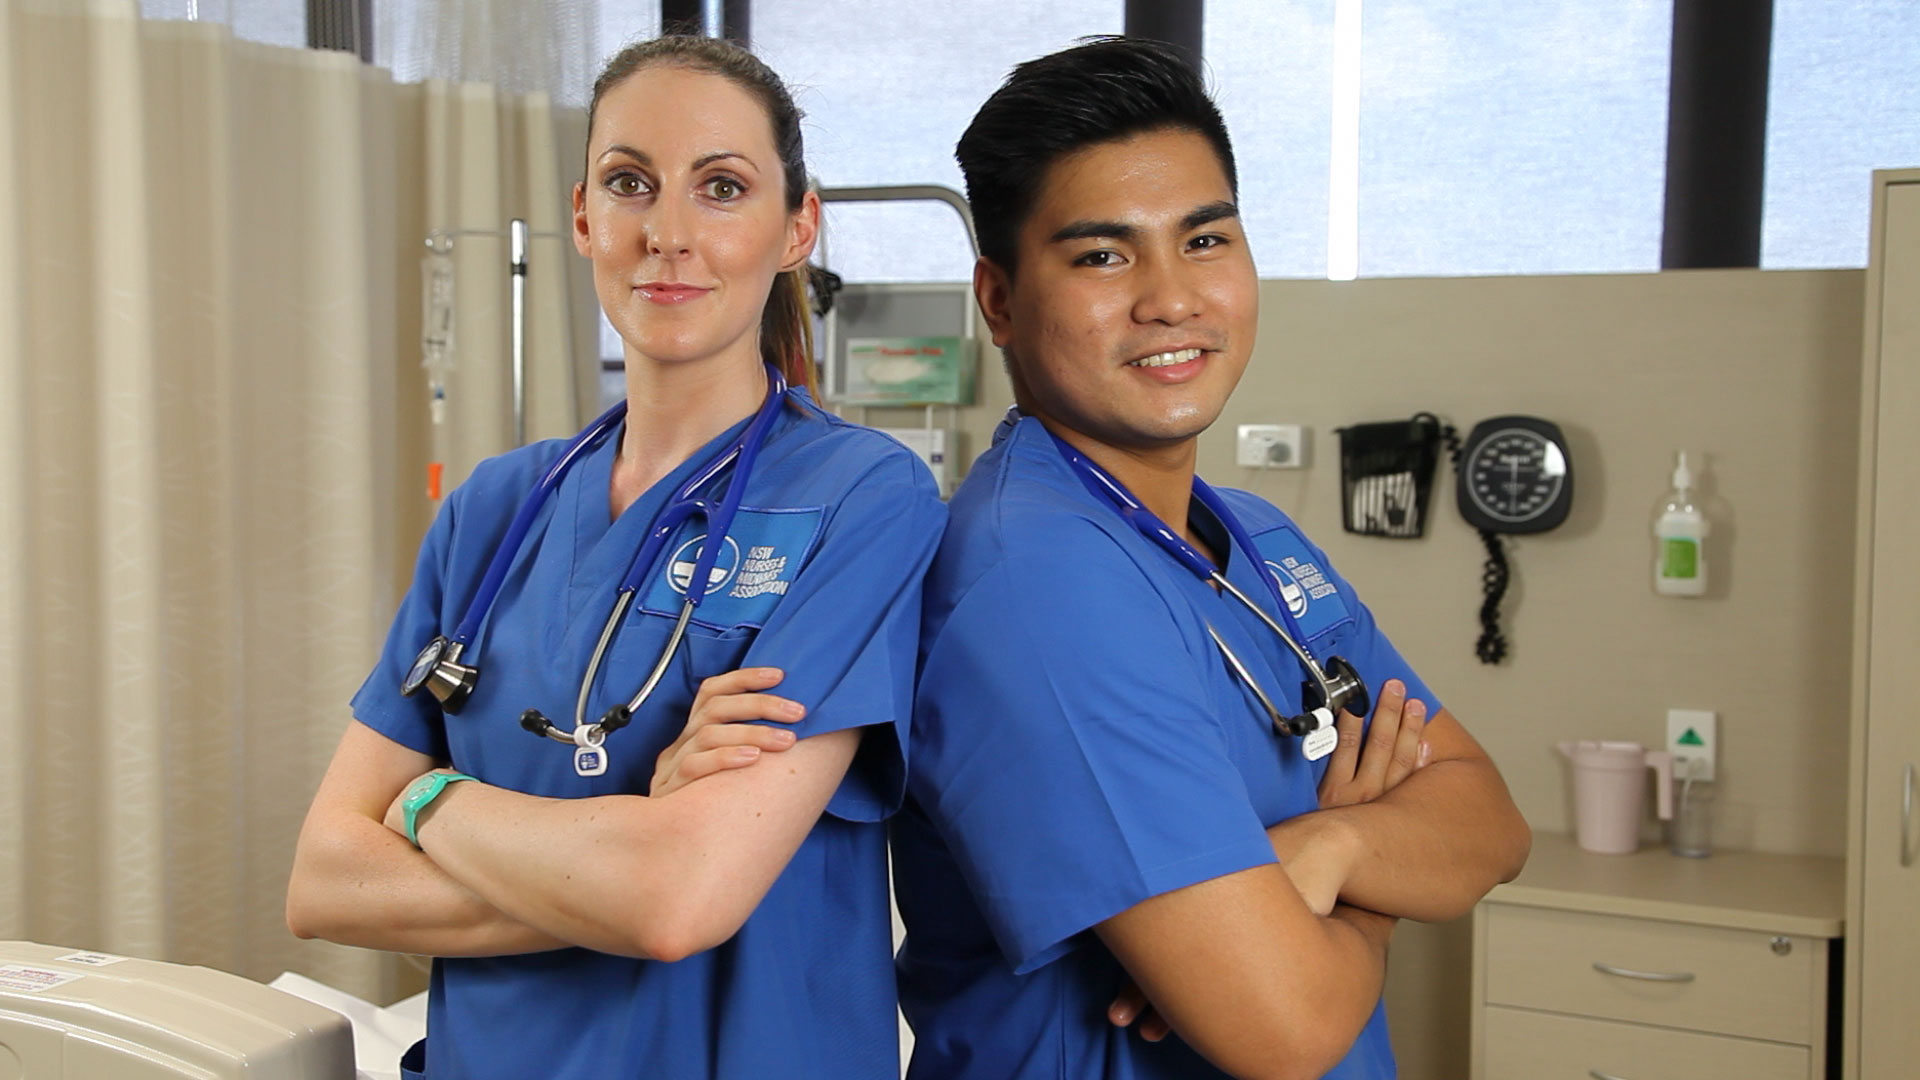 nsw nurses and midwives association